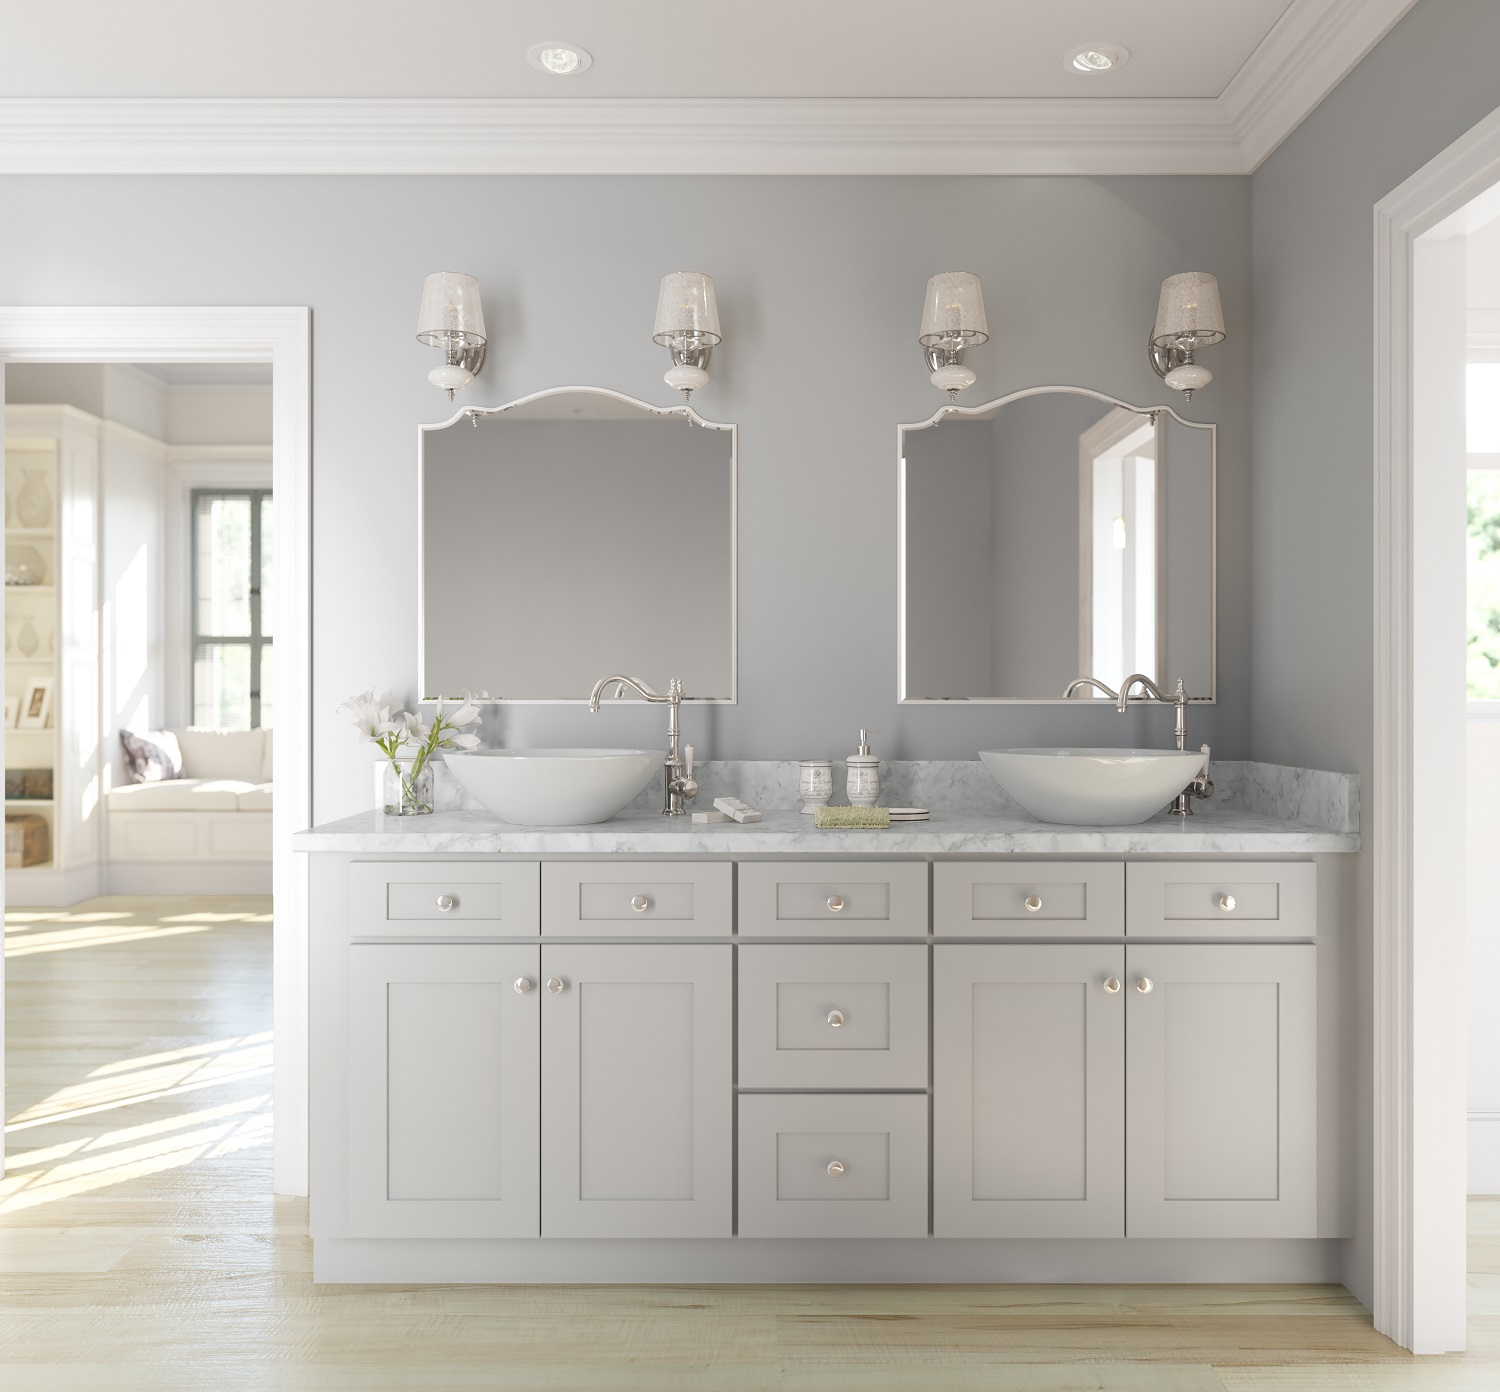 Customized Cheap Design Italian Style Set Solid Wood Bathroom Vanity Cabinet Buy Cheap Bathroom Cabinet Vanity Bathroom Bathroom Vanity Cabinet Product On Alibaba Com